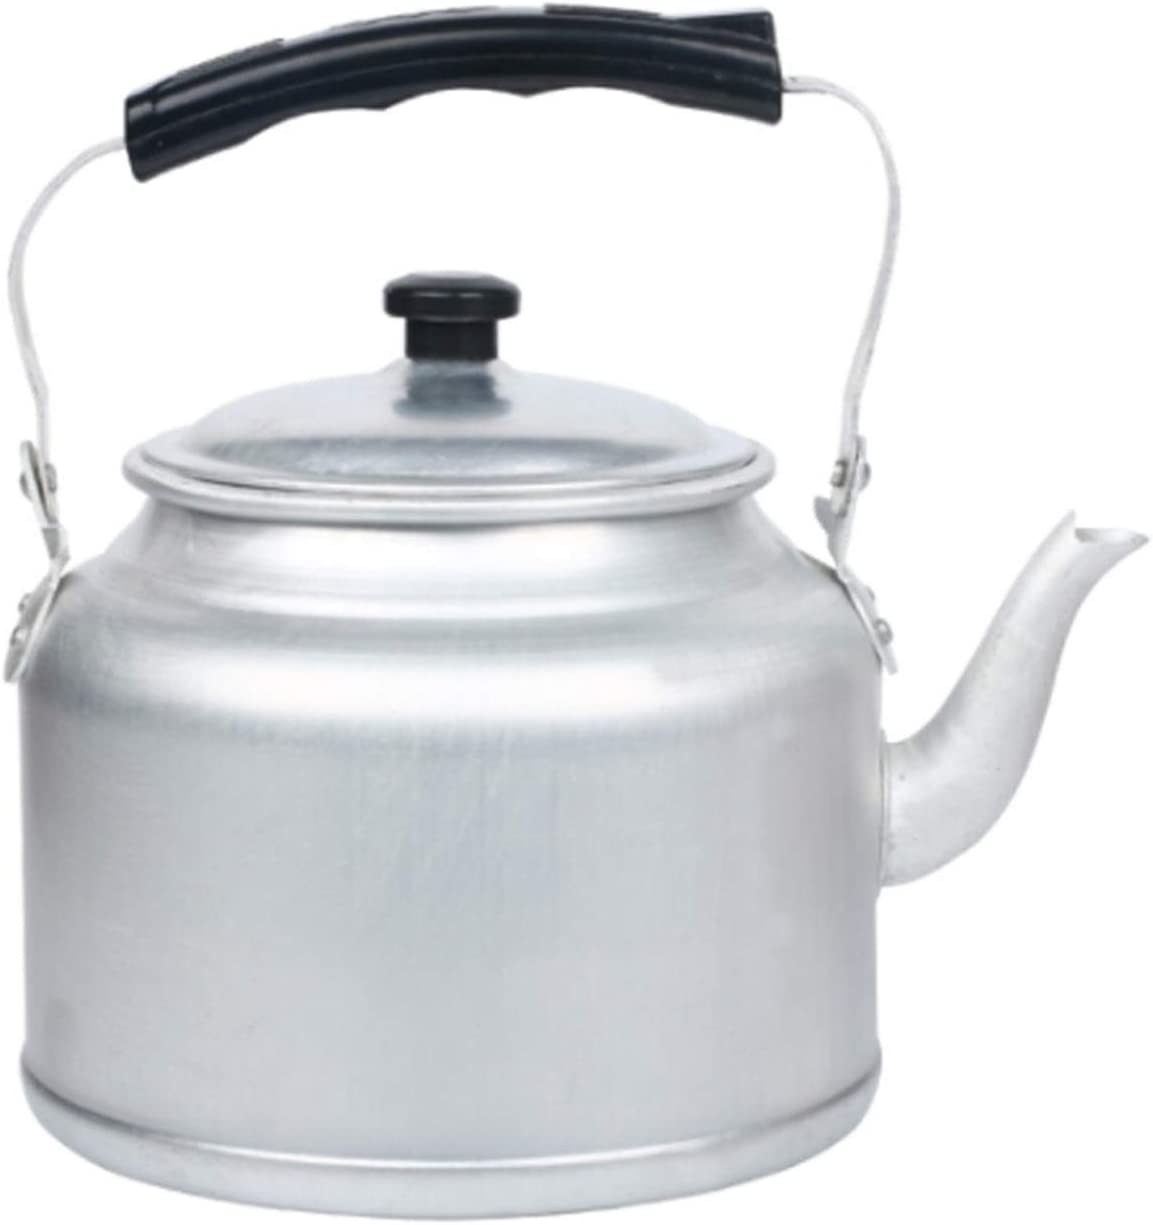 Old-Style Aluminum Tea Kettle Stove for Top Boiling Wat Kettles Challenge the lowest price of Japan Cheap sale